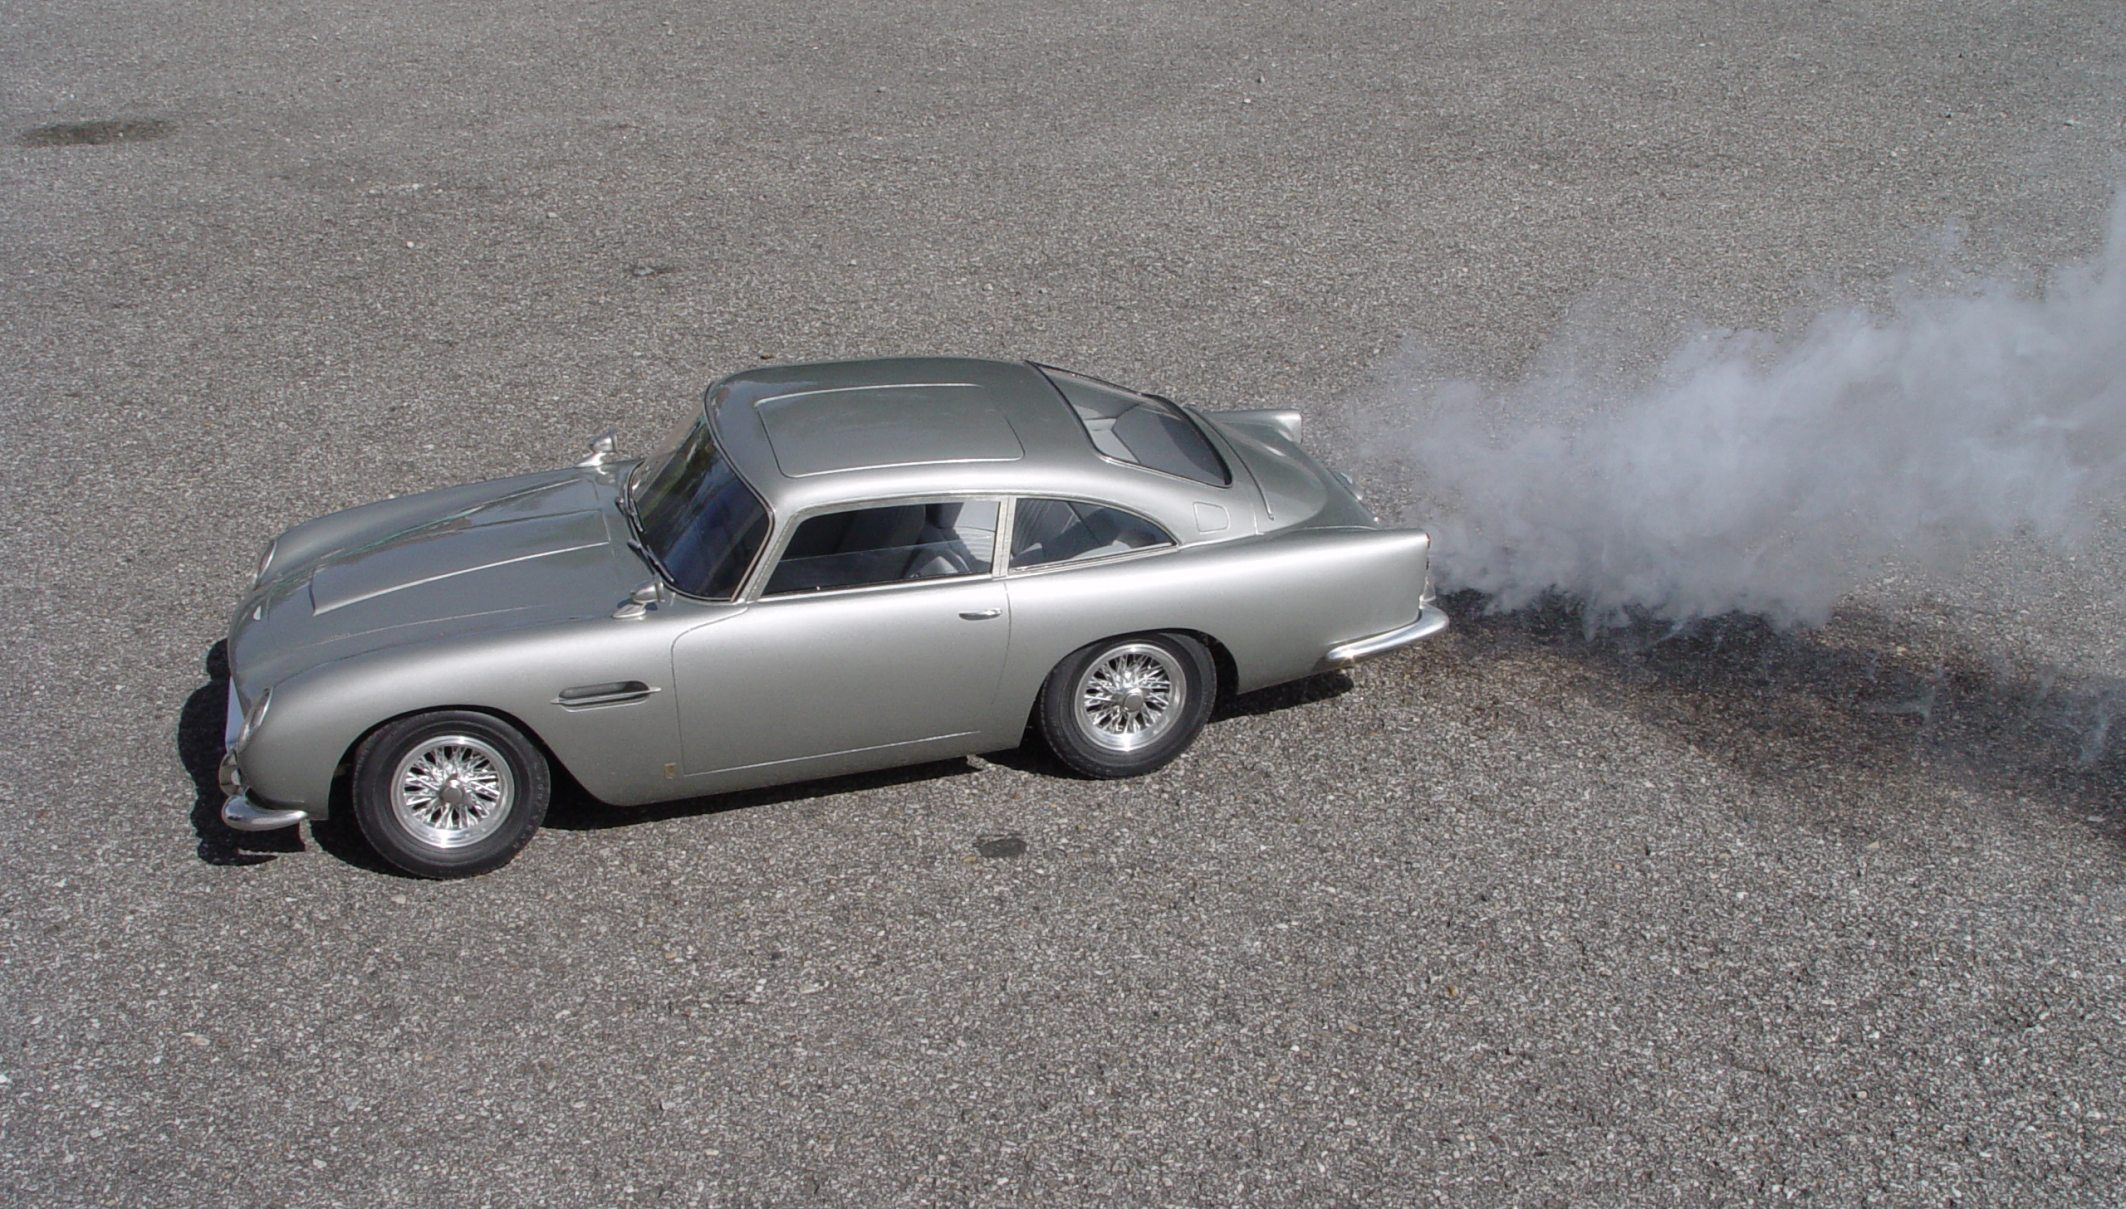 james bond 007 aston martin db5 1/8 model from diamond cars